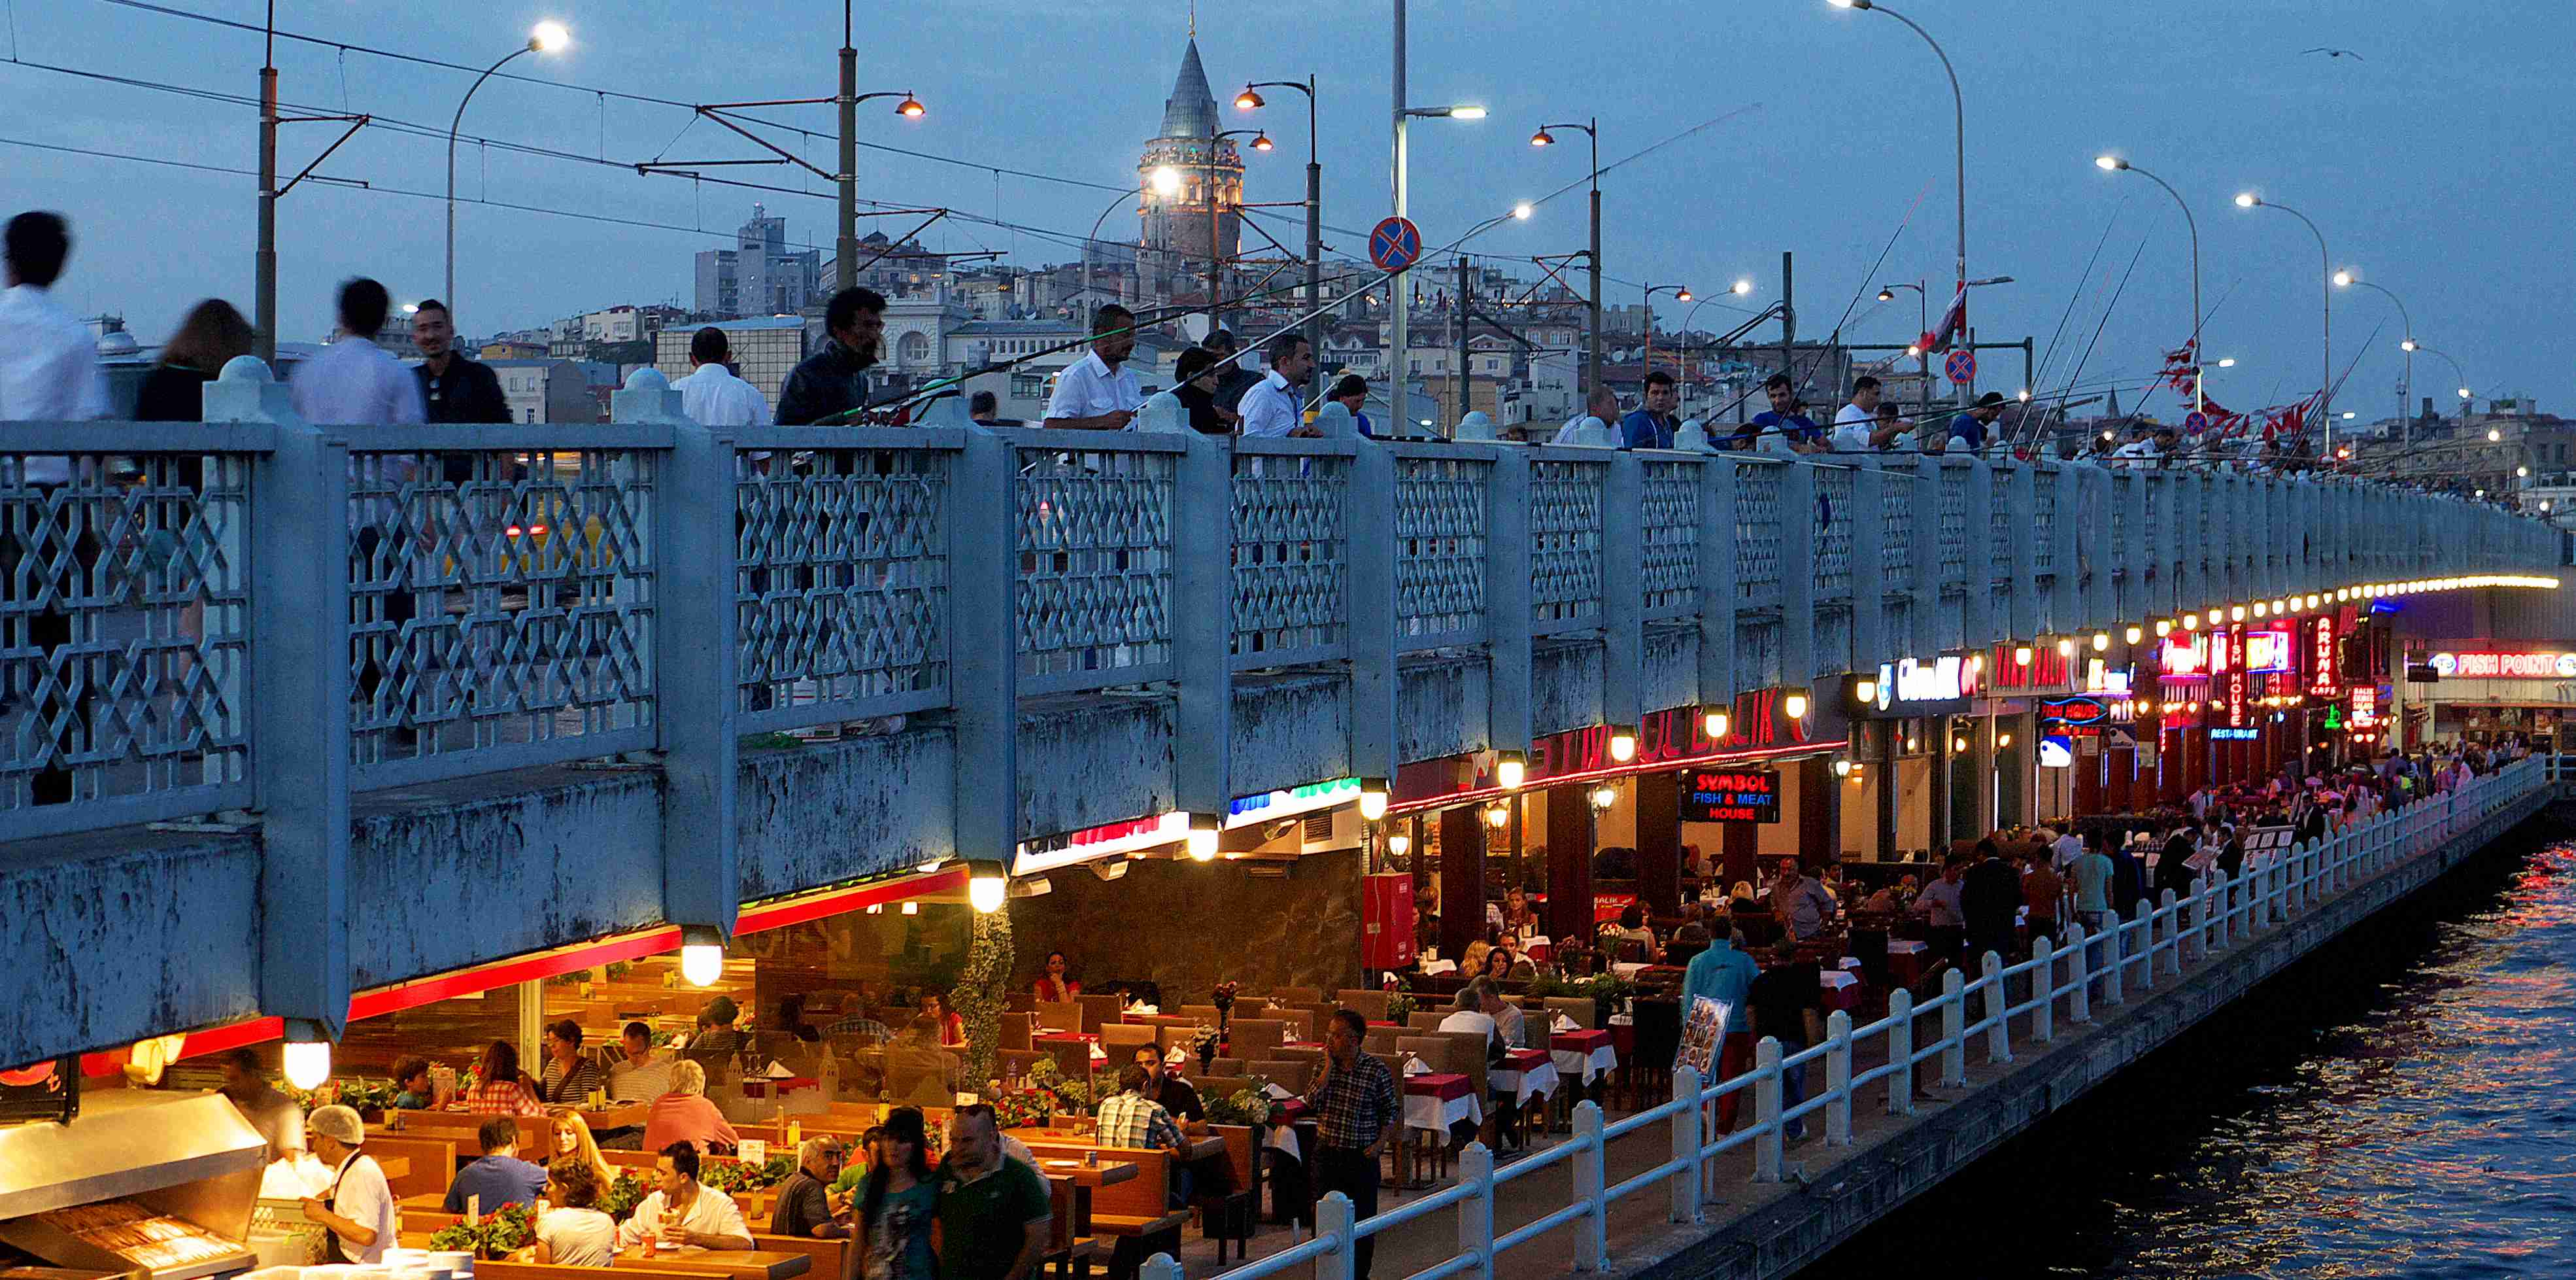 Fishermen's favourite - Galata Bridge